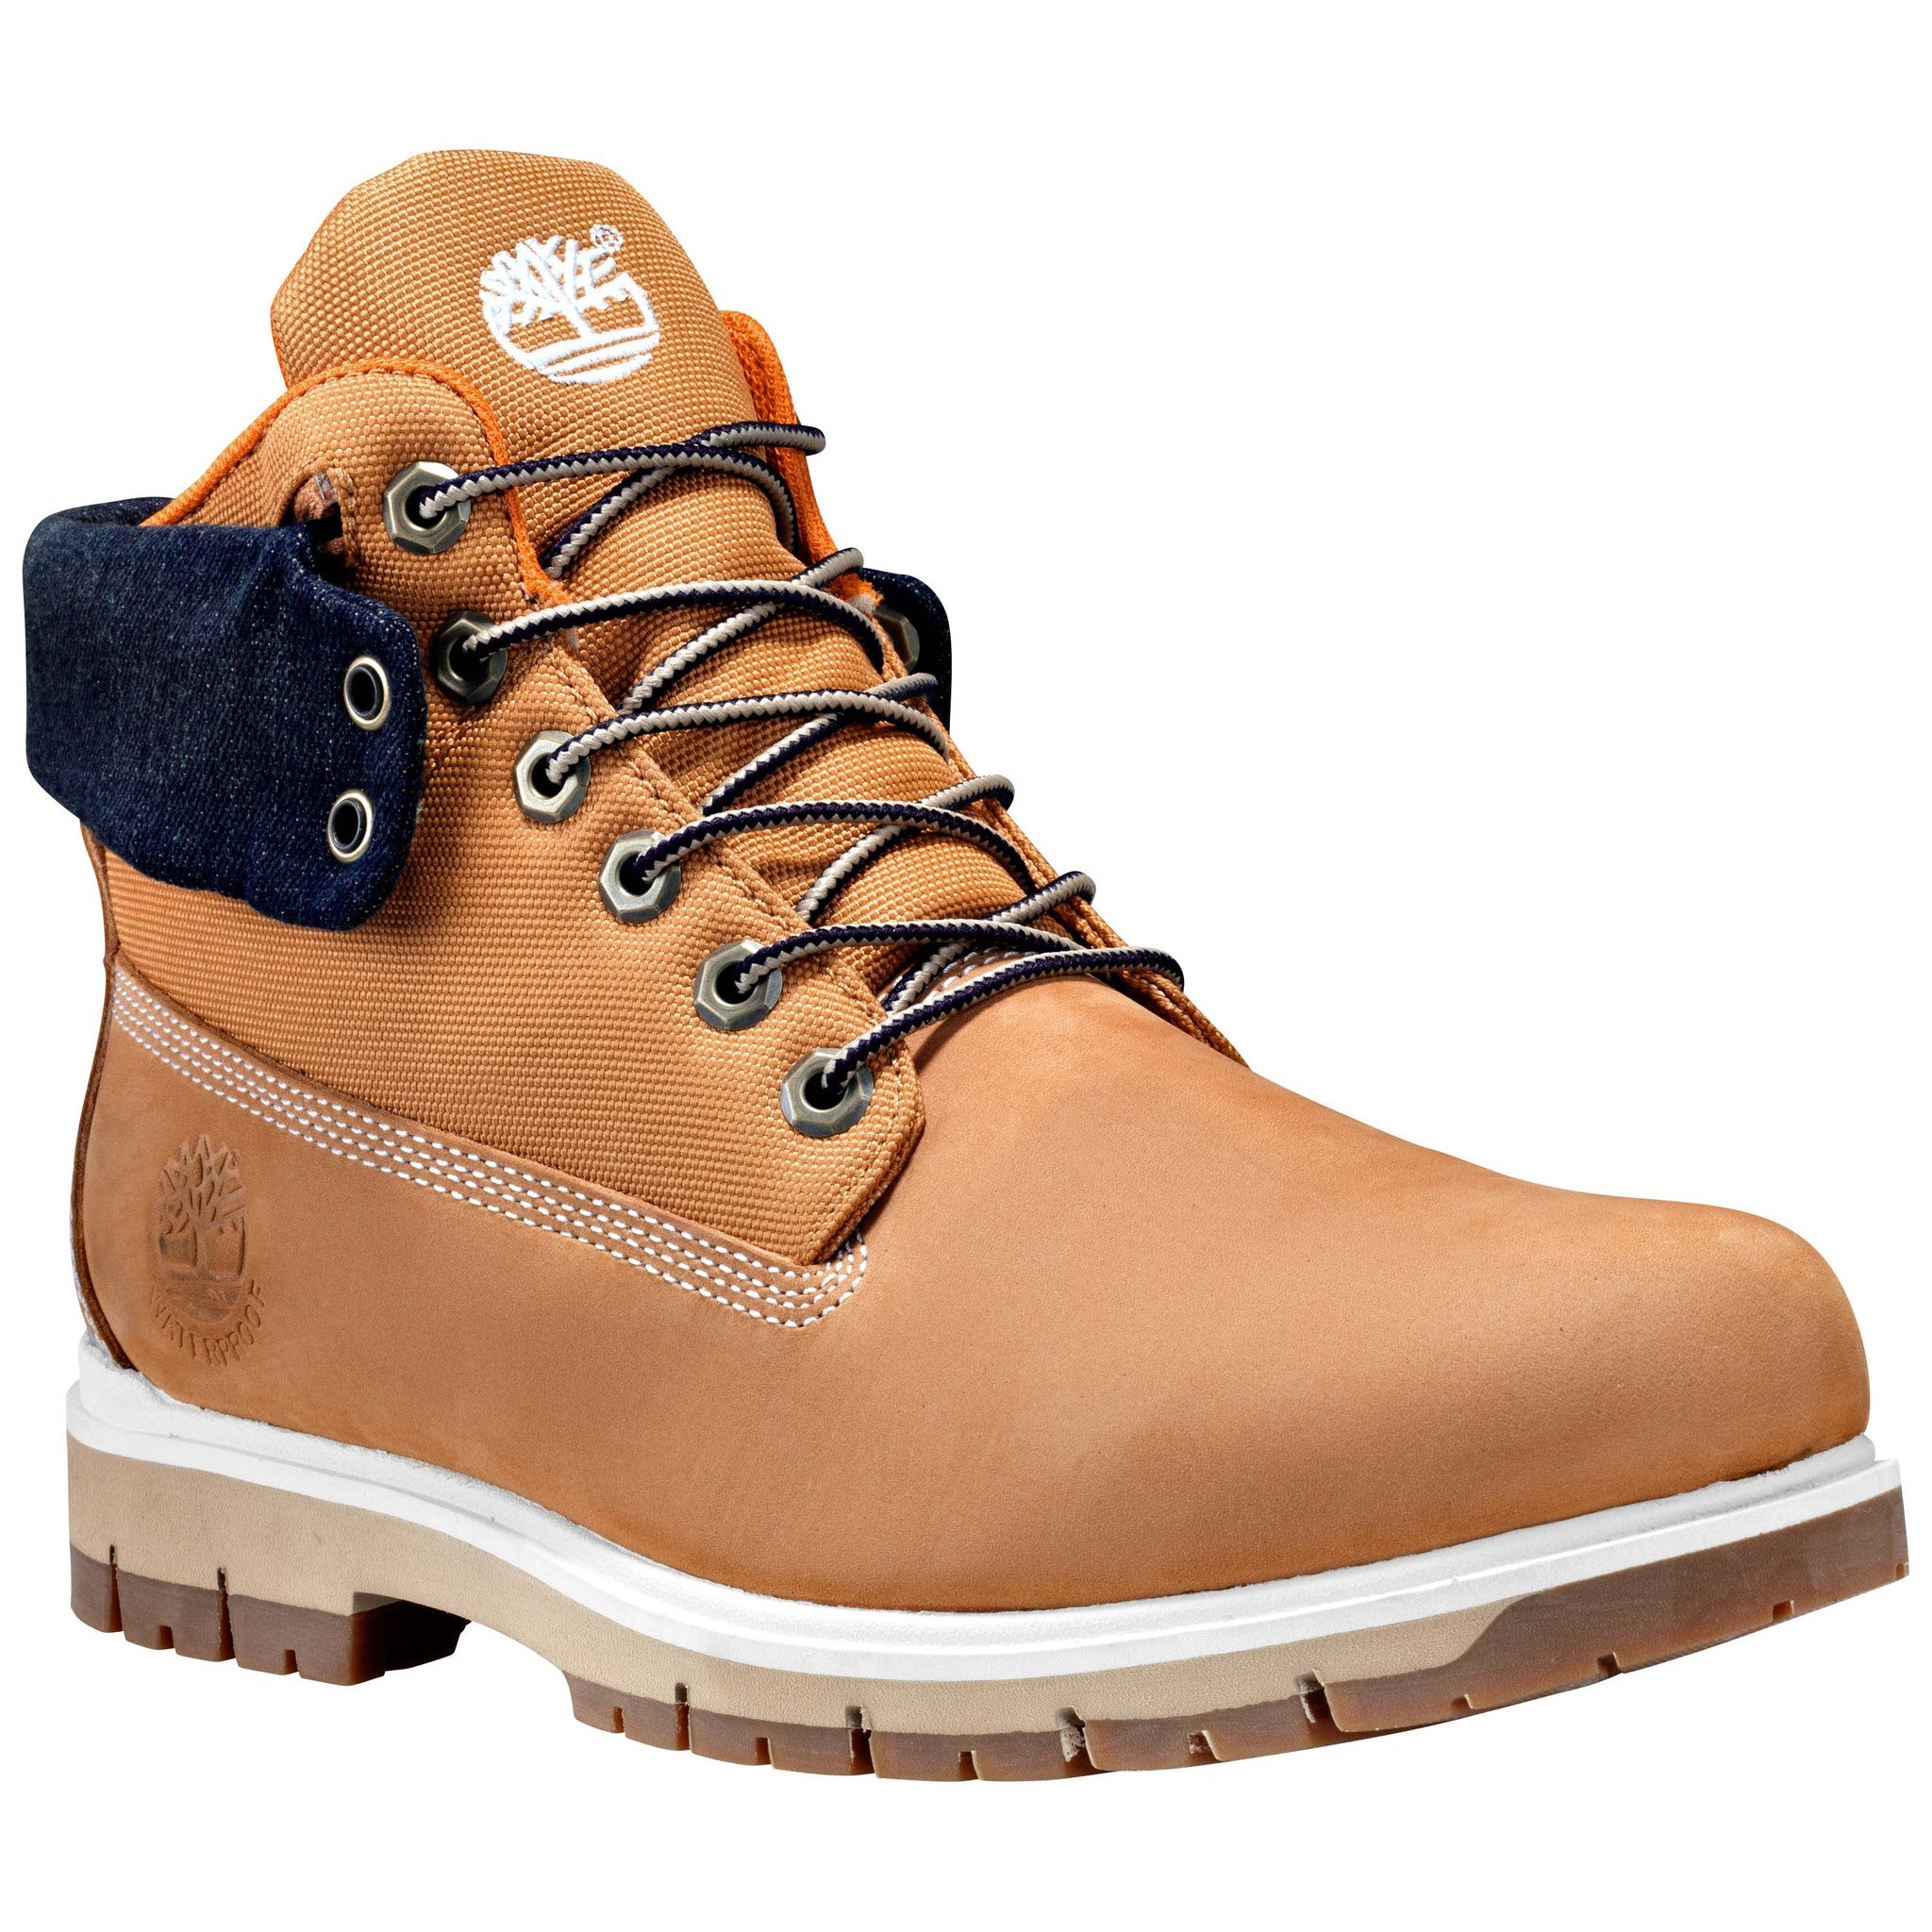 Timberland mens roll top bottom line boot